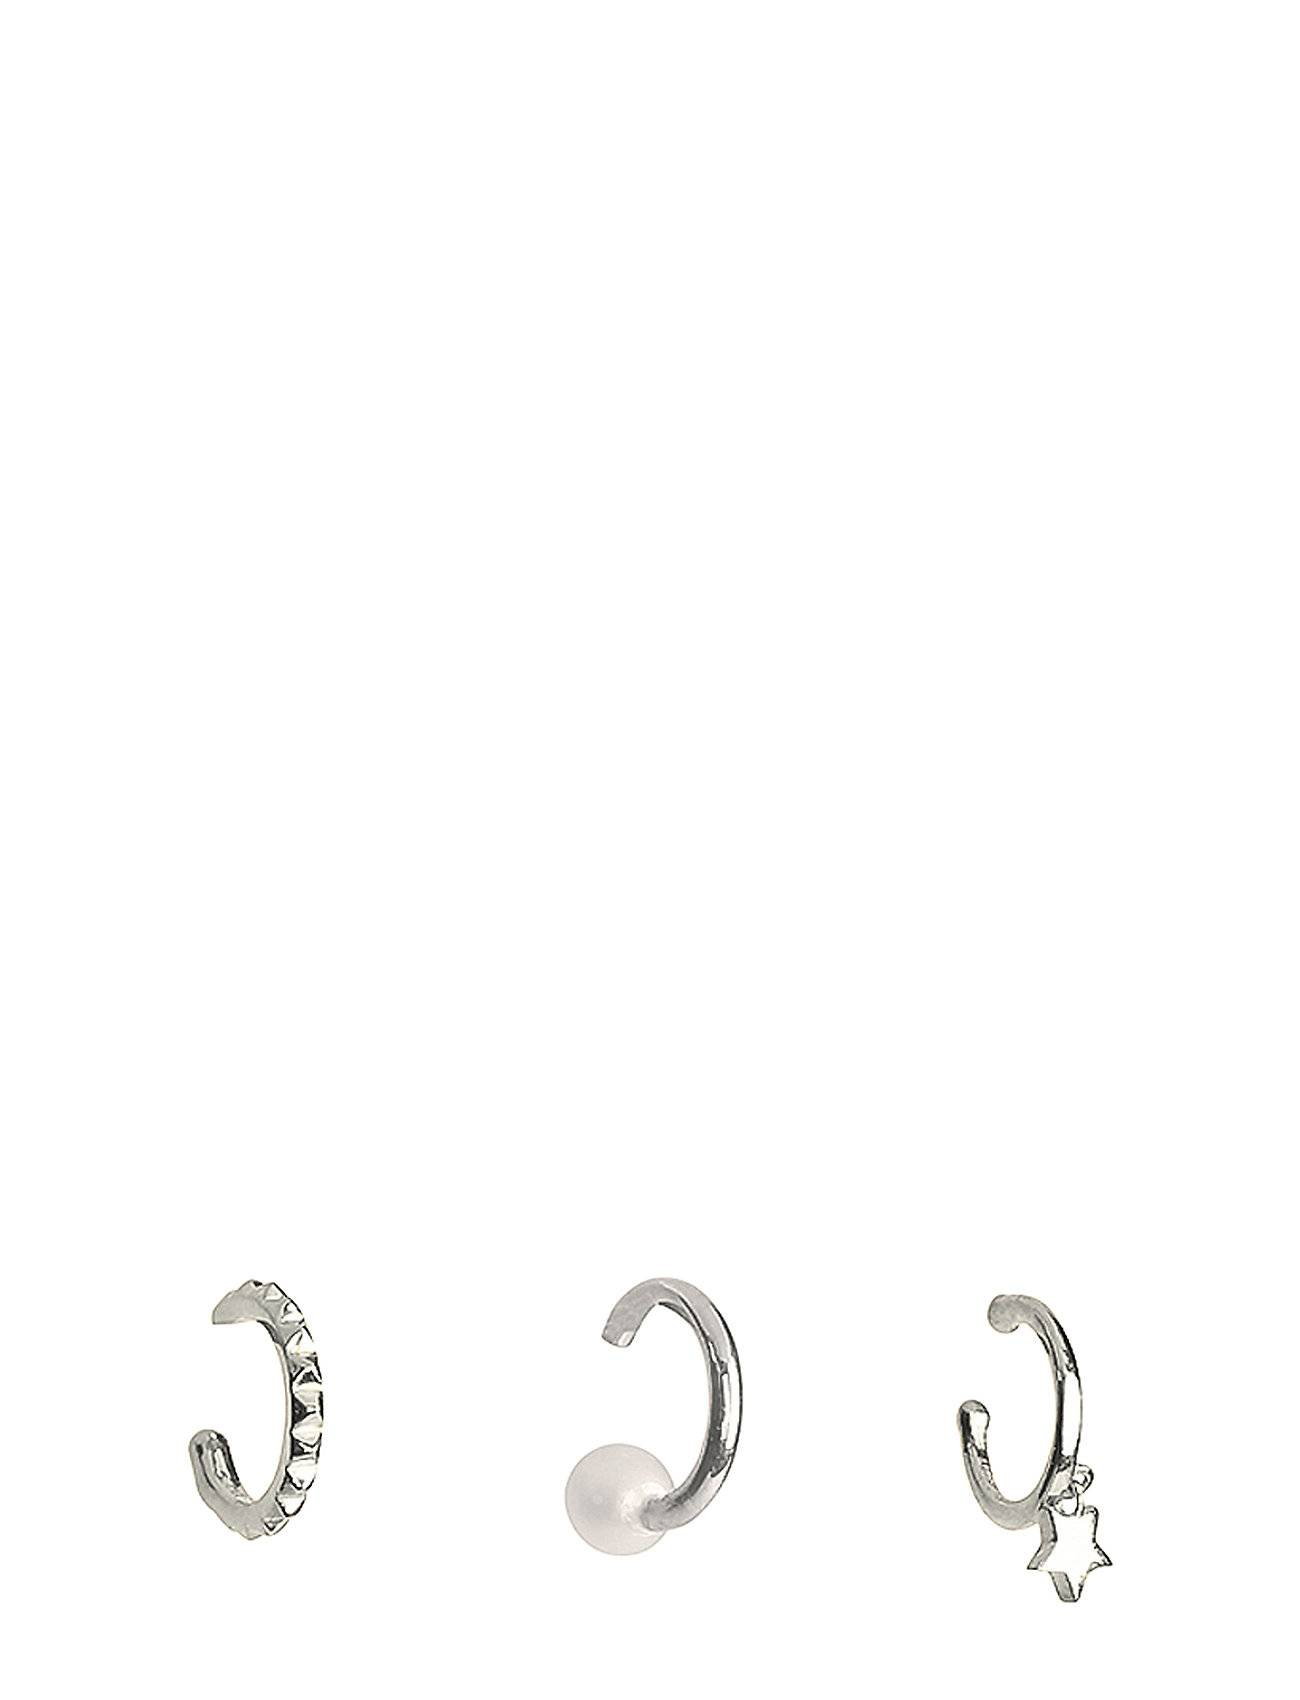 Syster P Mini Cuff Collection Pearl And Star Silver Accessories Jewellery Earrings Hoops Hopea Syster P